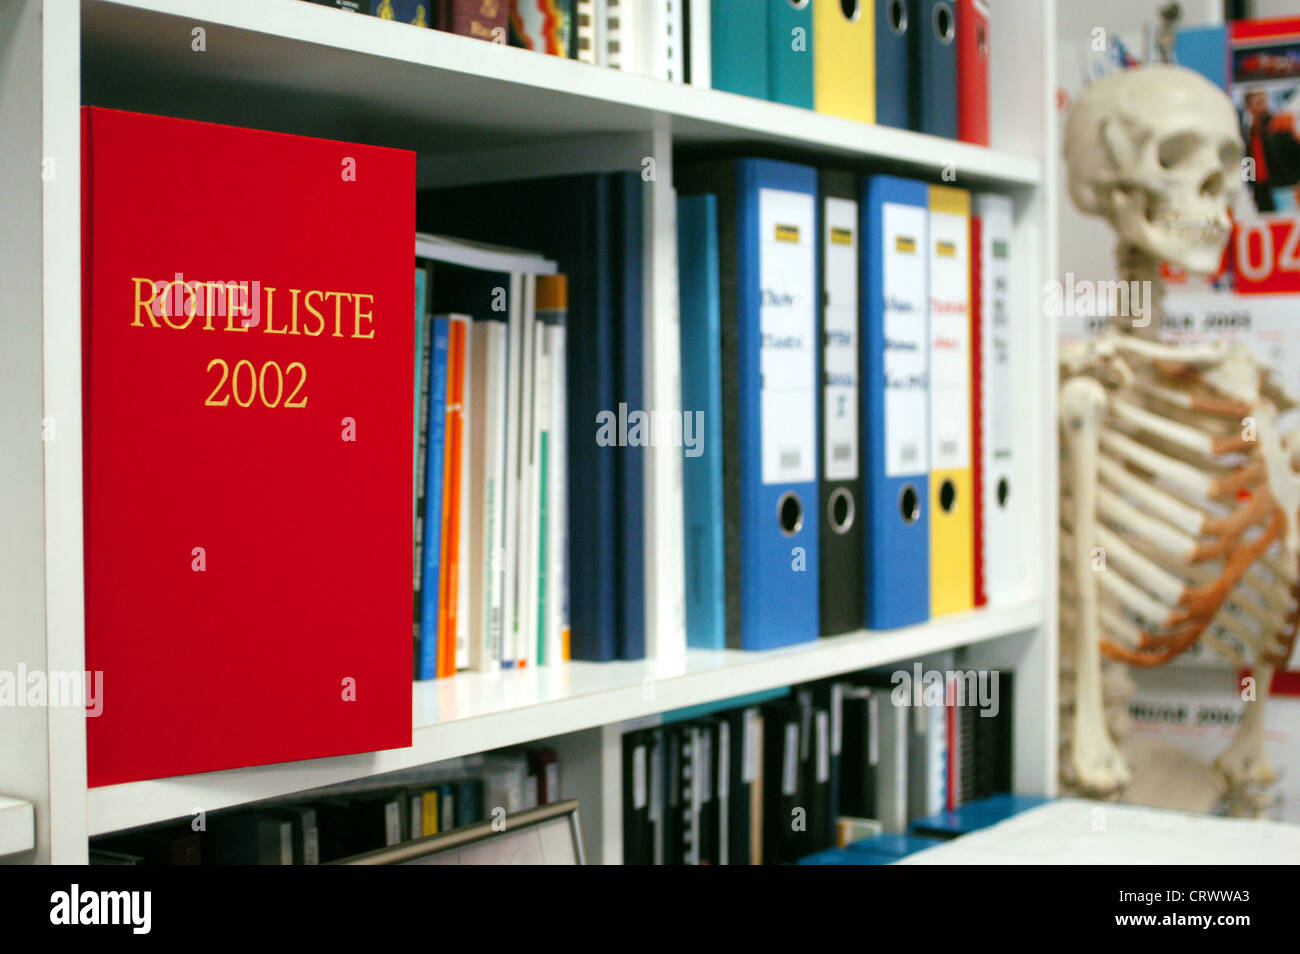 Medicines Directory Red List - Stock Image